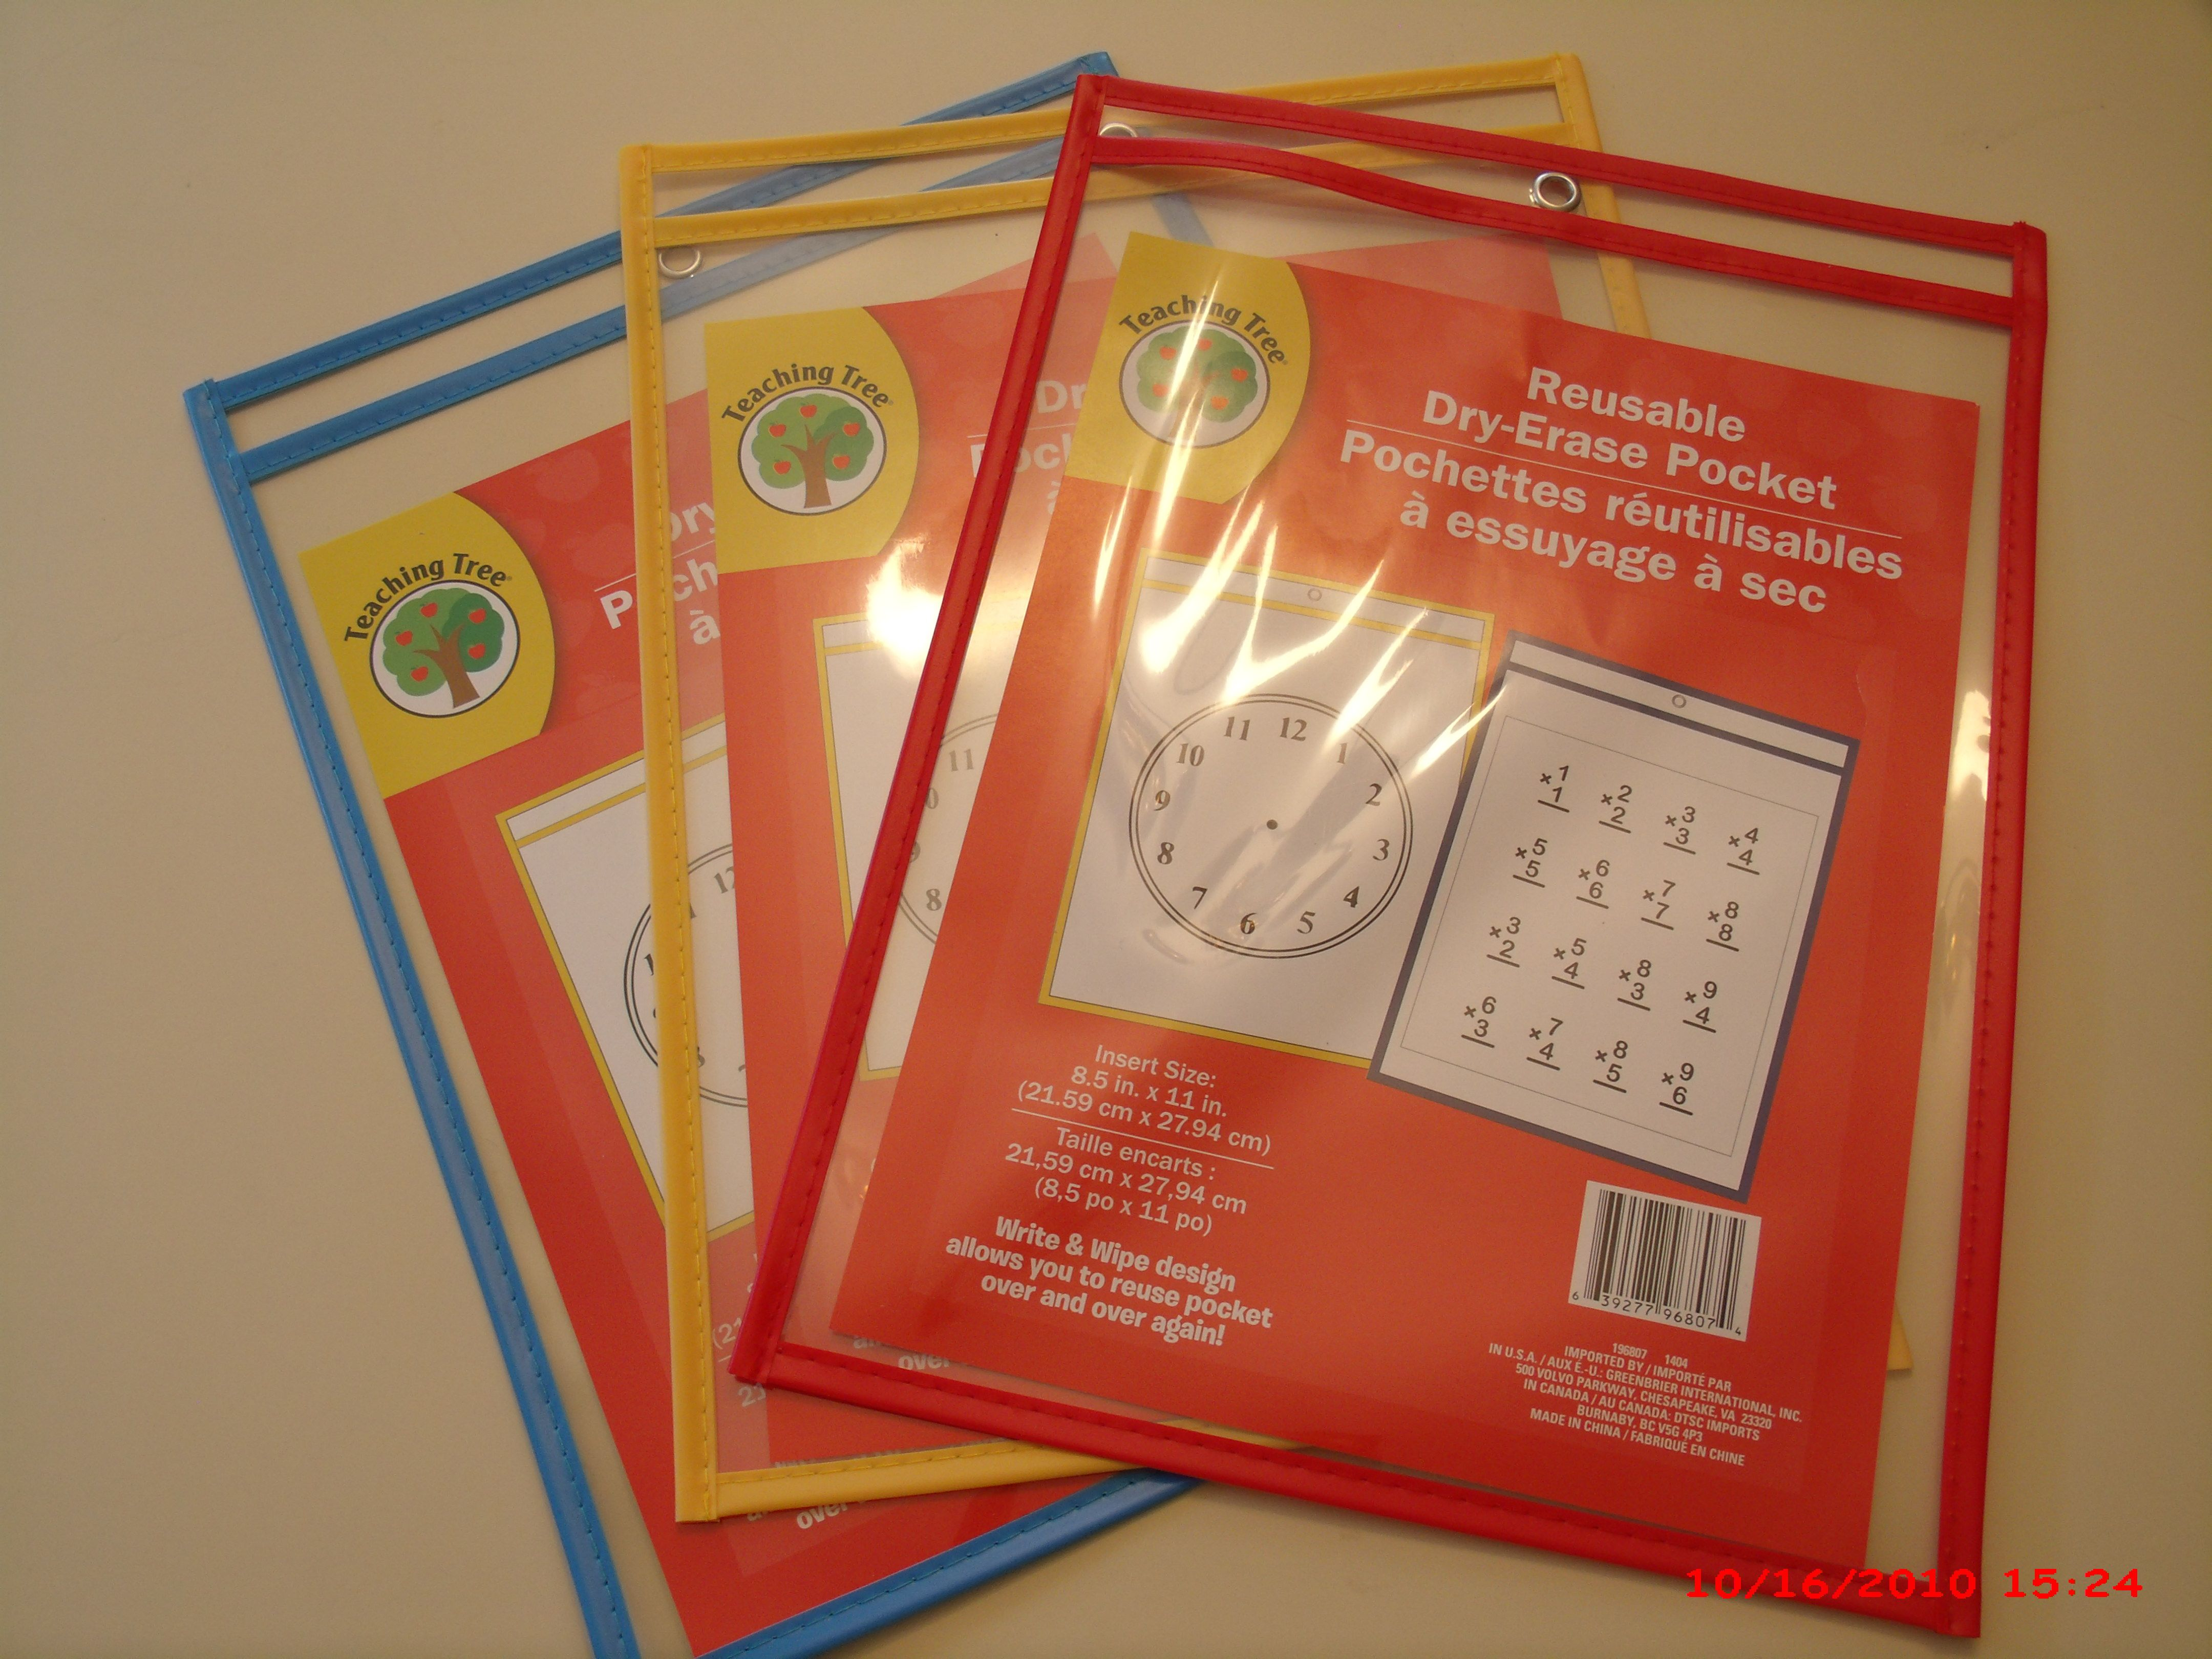 Insert papers in the dry ease wipe and write pages. $1.00 each.